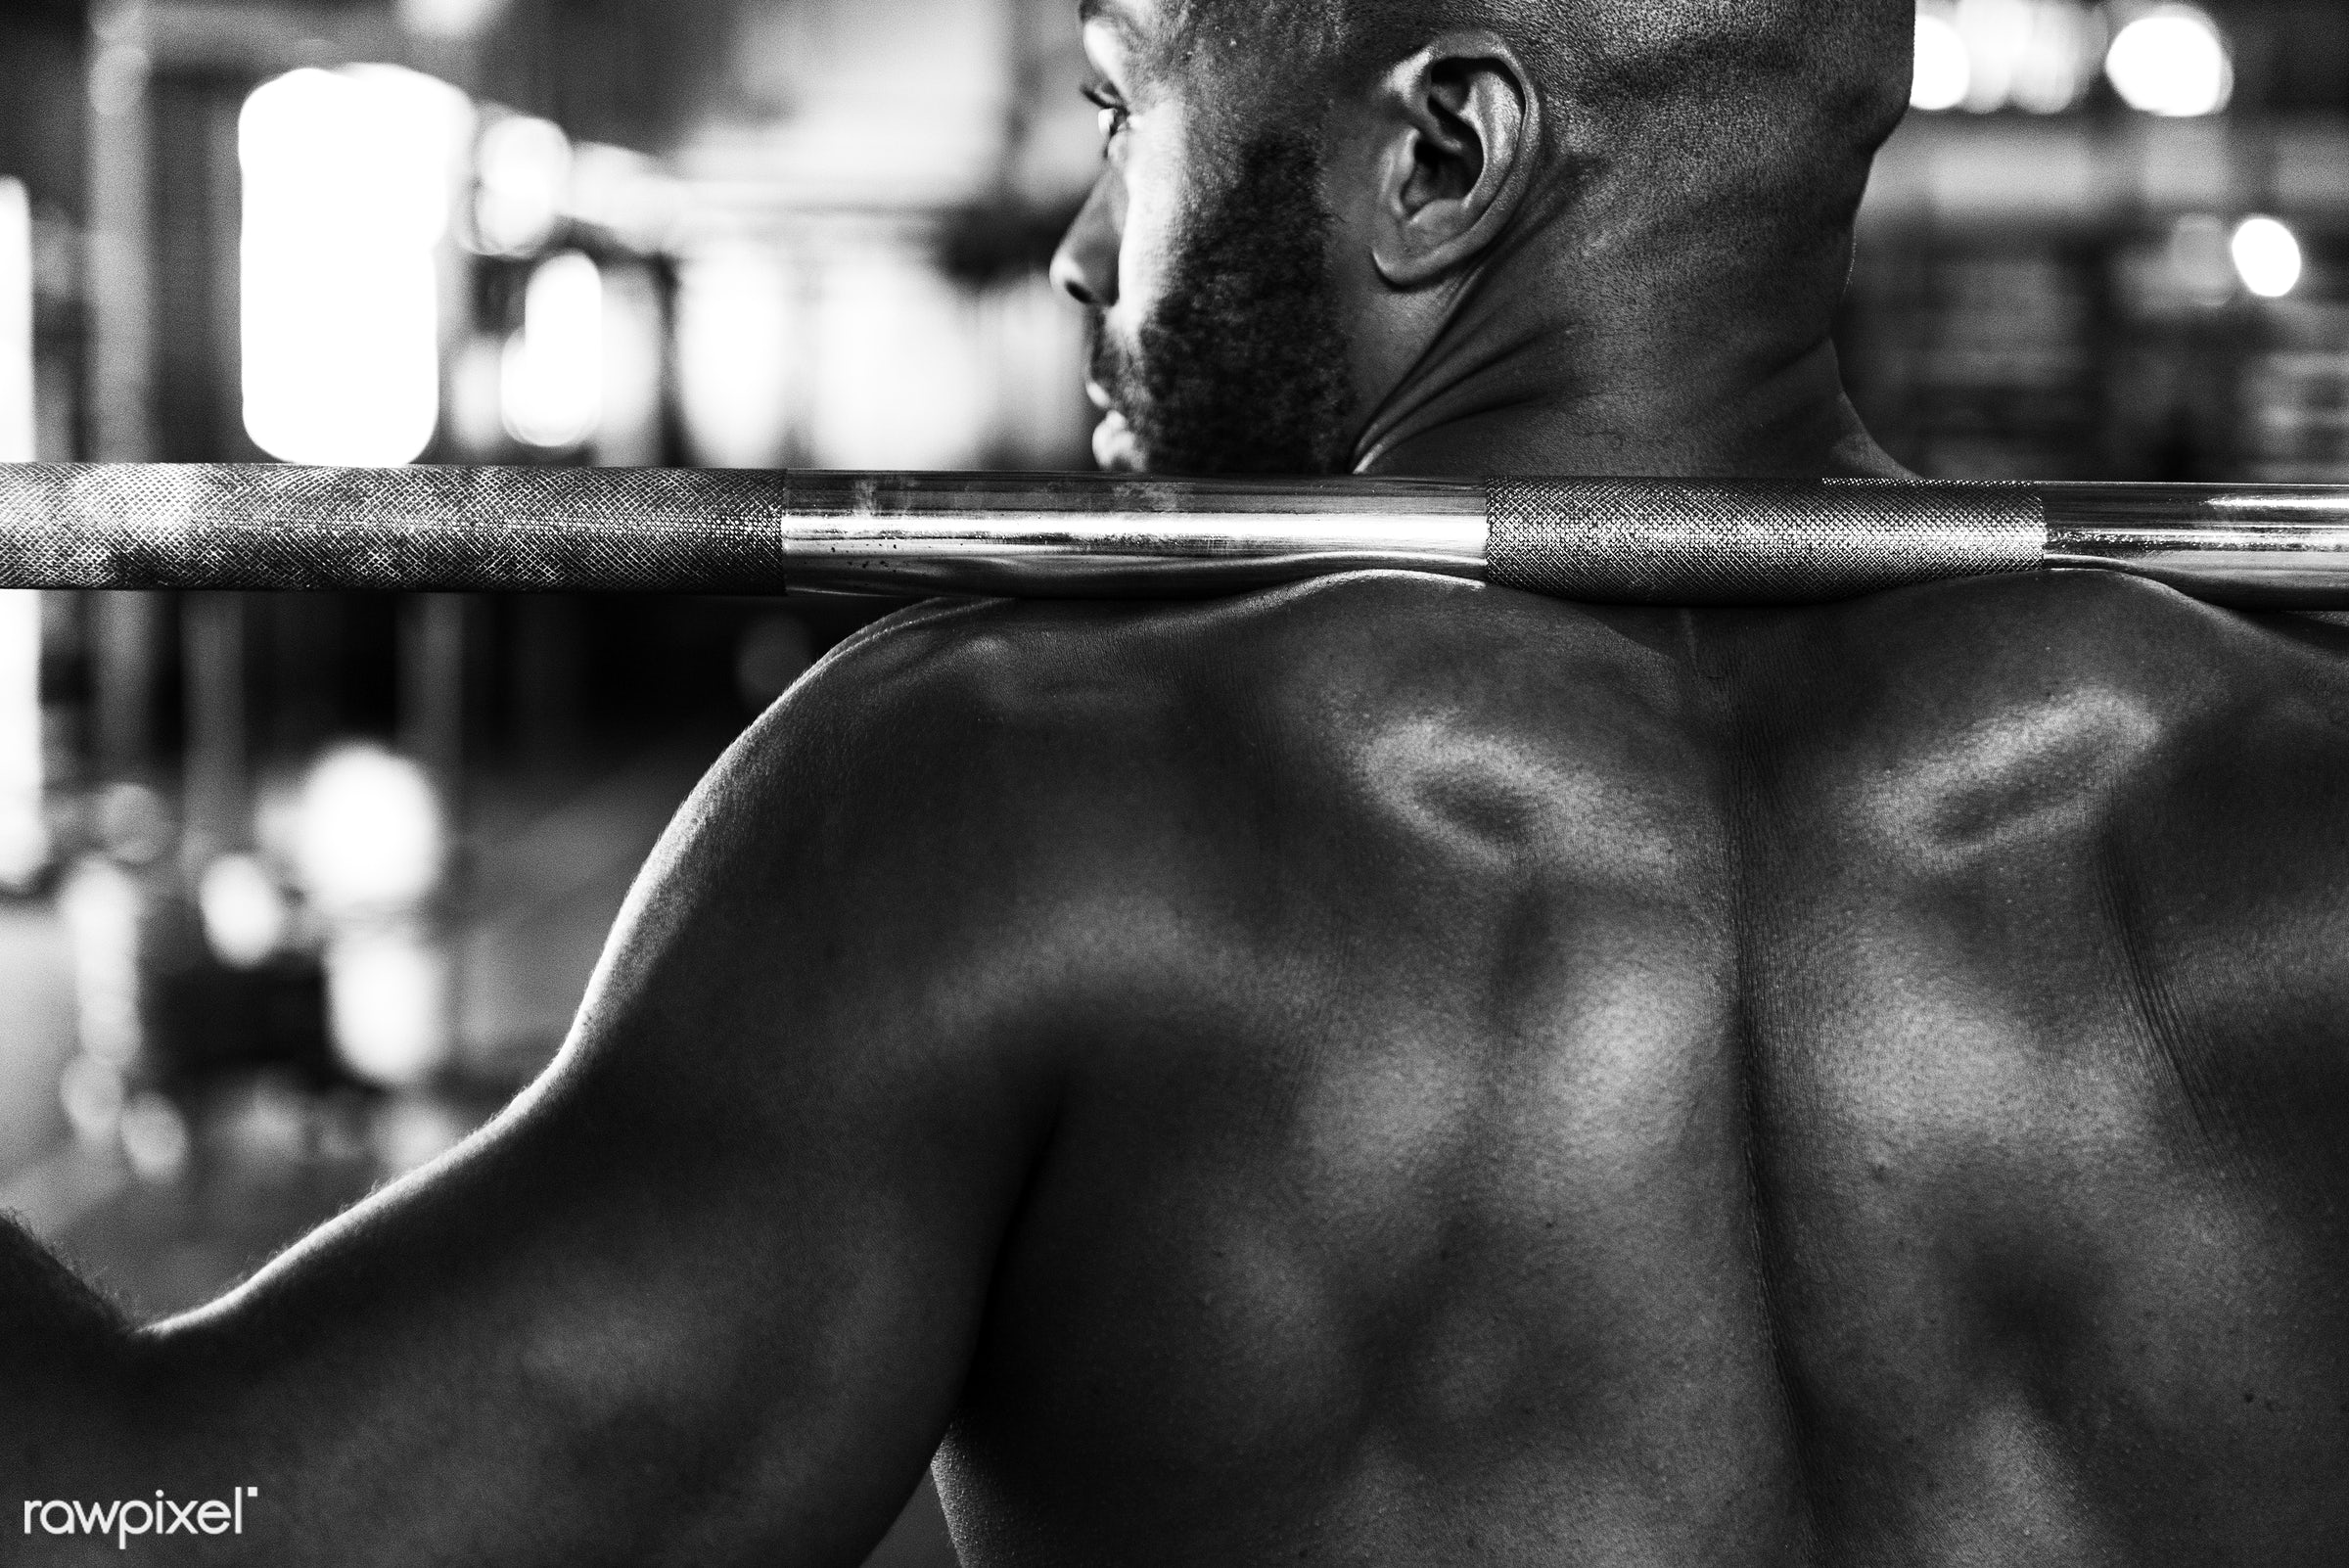 At the gym - active, activity, african descent, athlete, athletic, back, barbell, body, buff, concentration, equipment, fit...